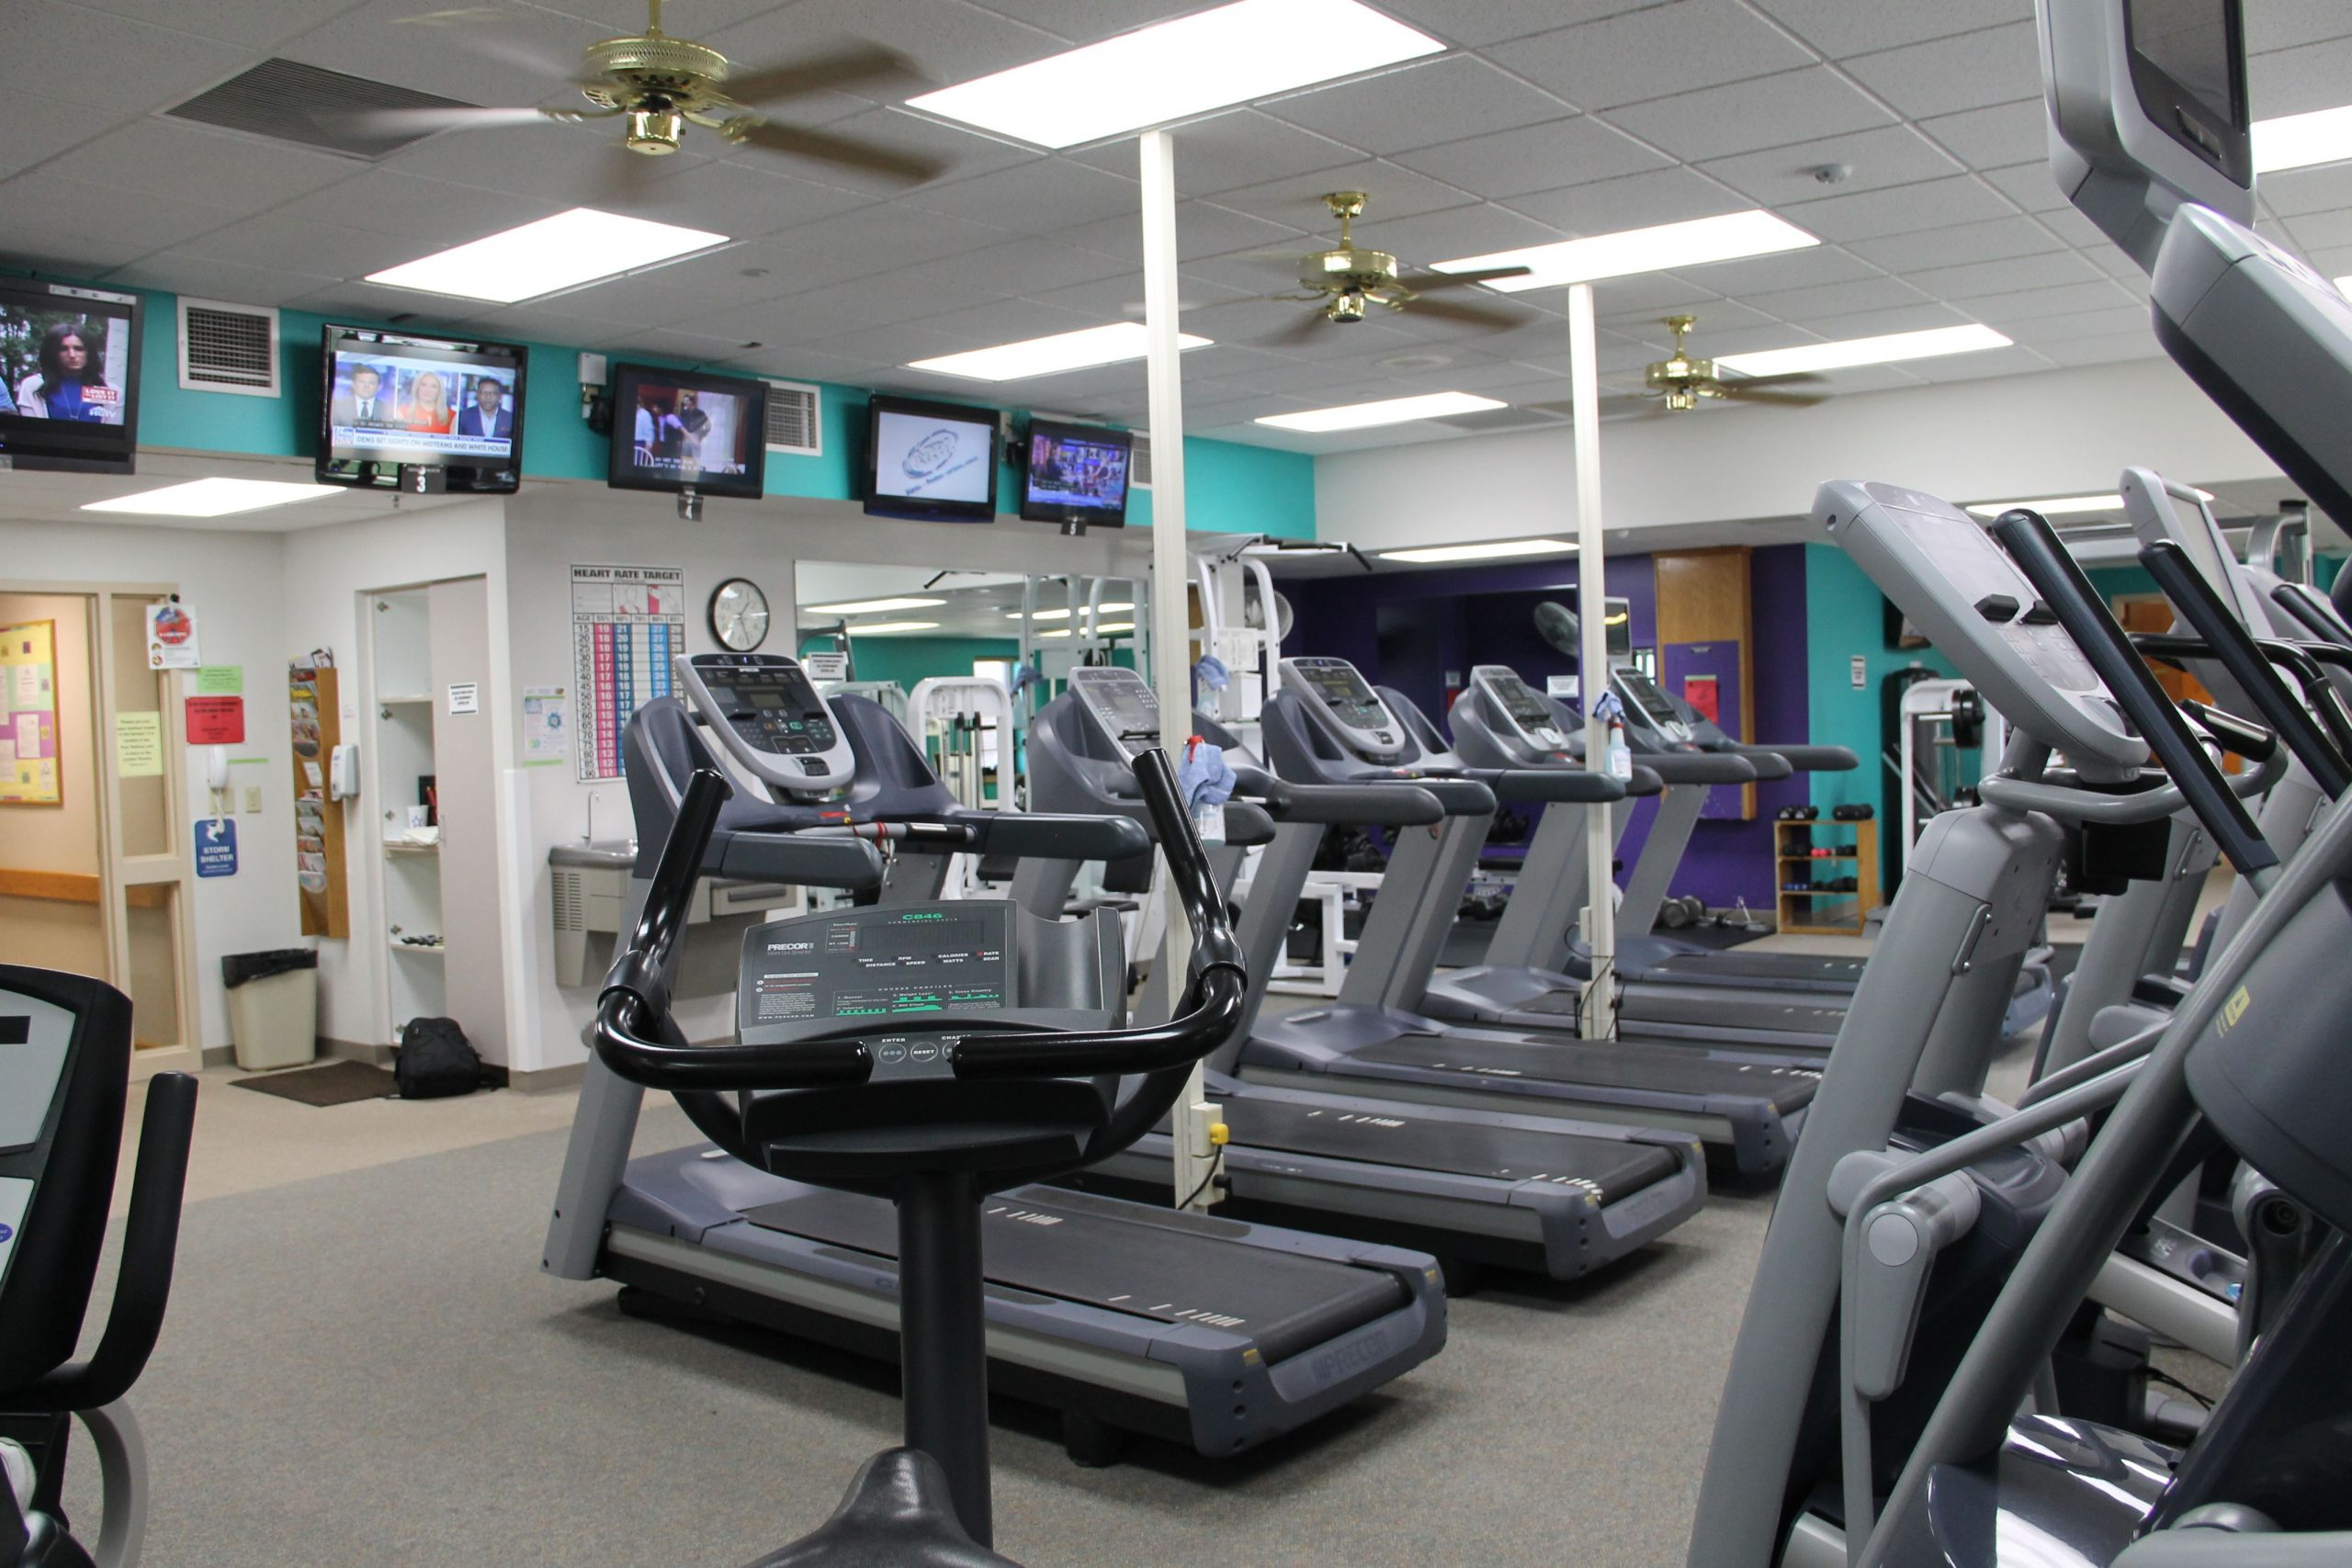 Wellness Centers in Hesston and North Newton taking a cautious approach to reopening